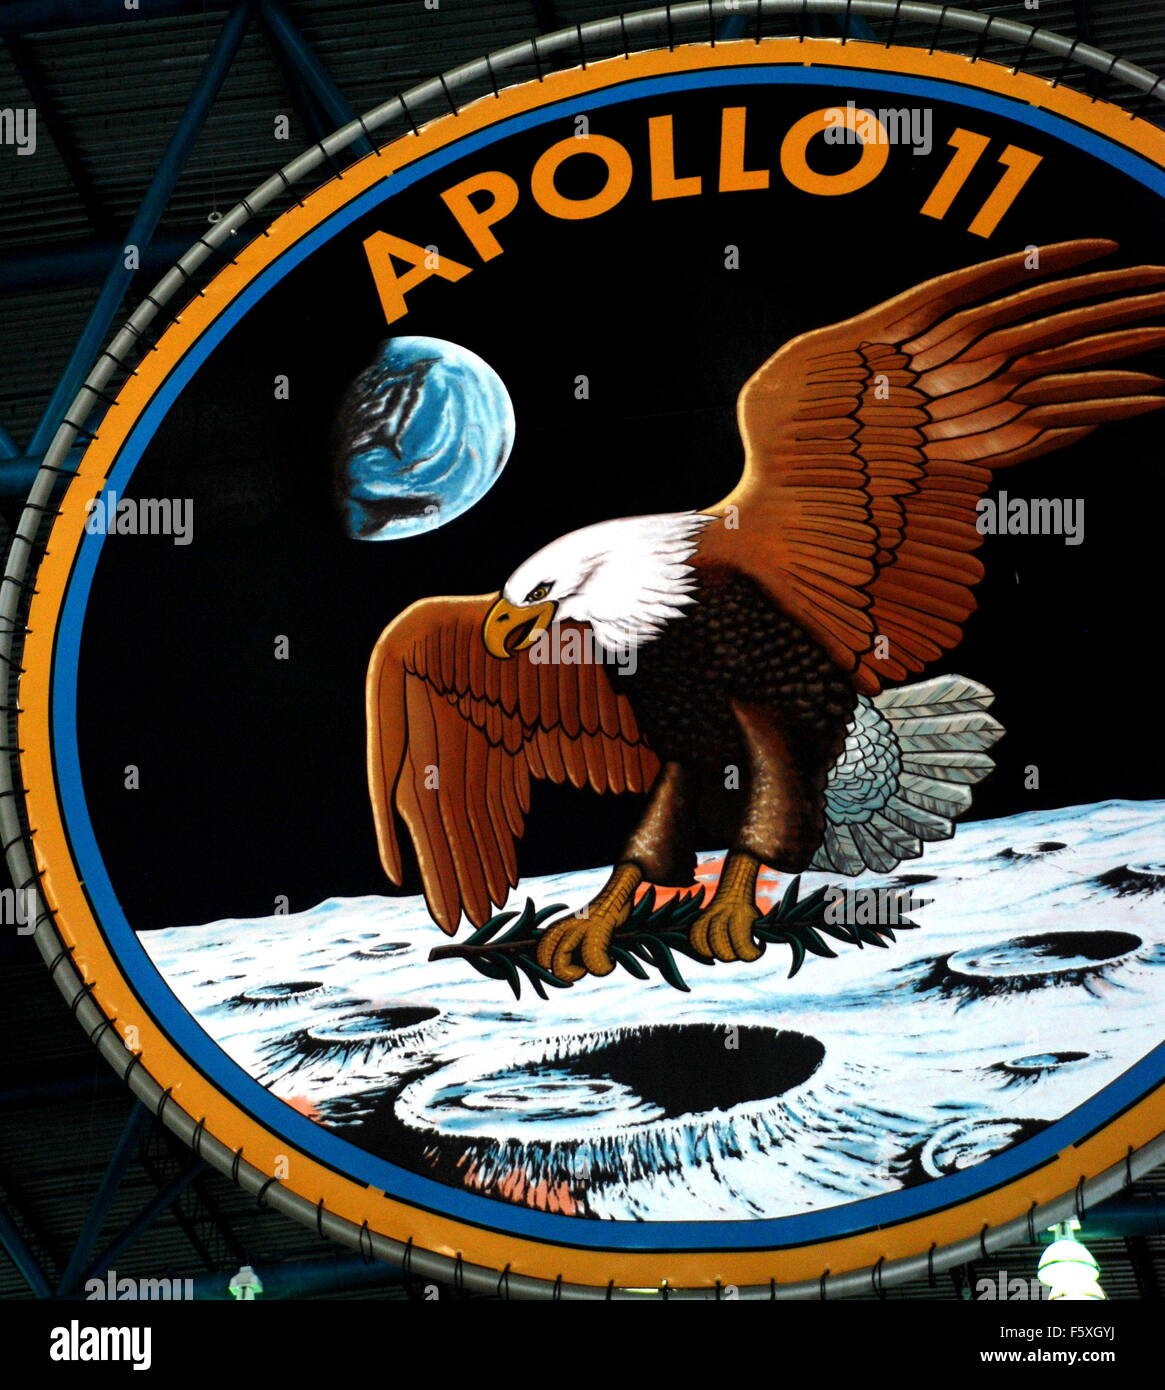 Apollo 11 Logo - Stock Image